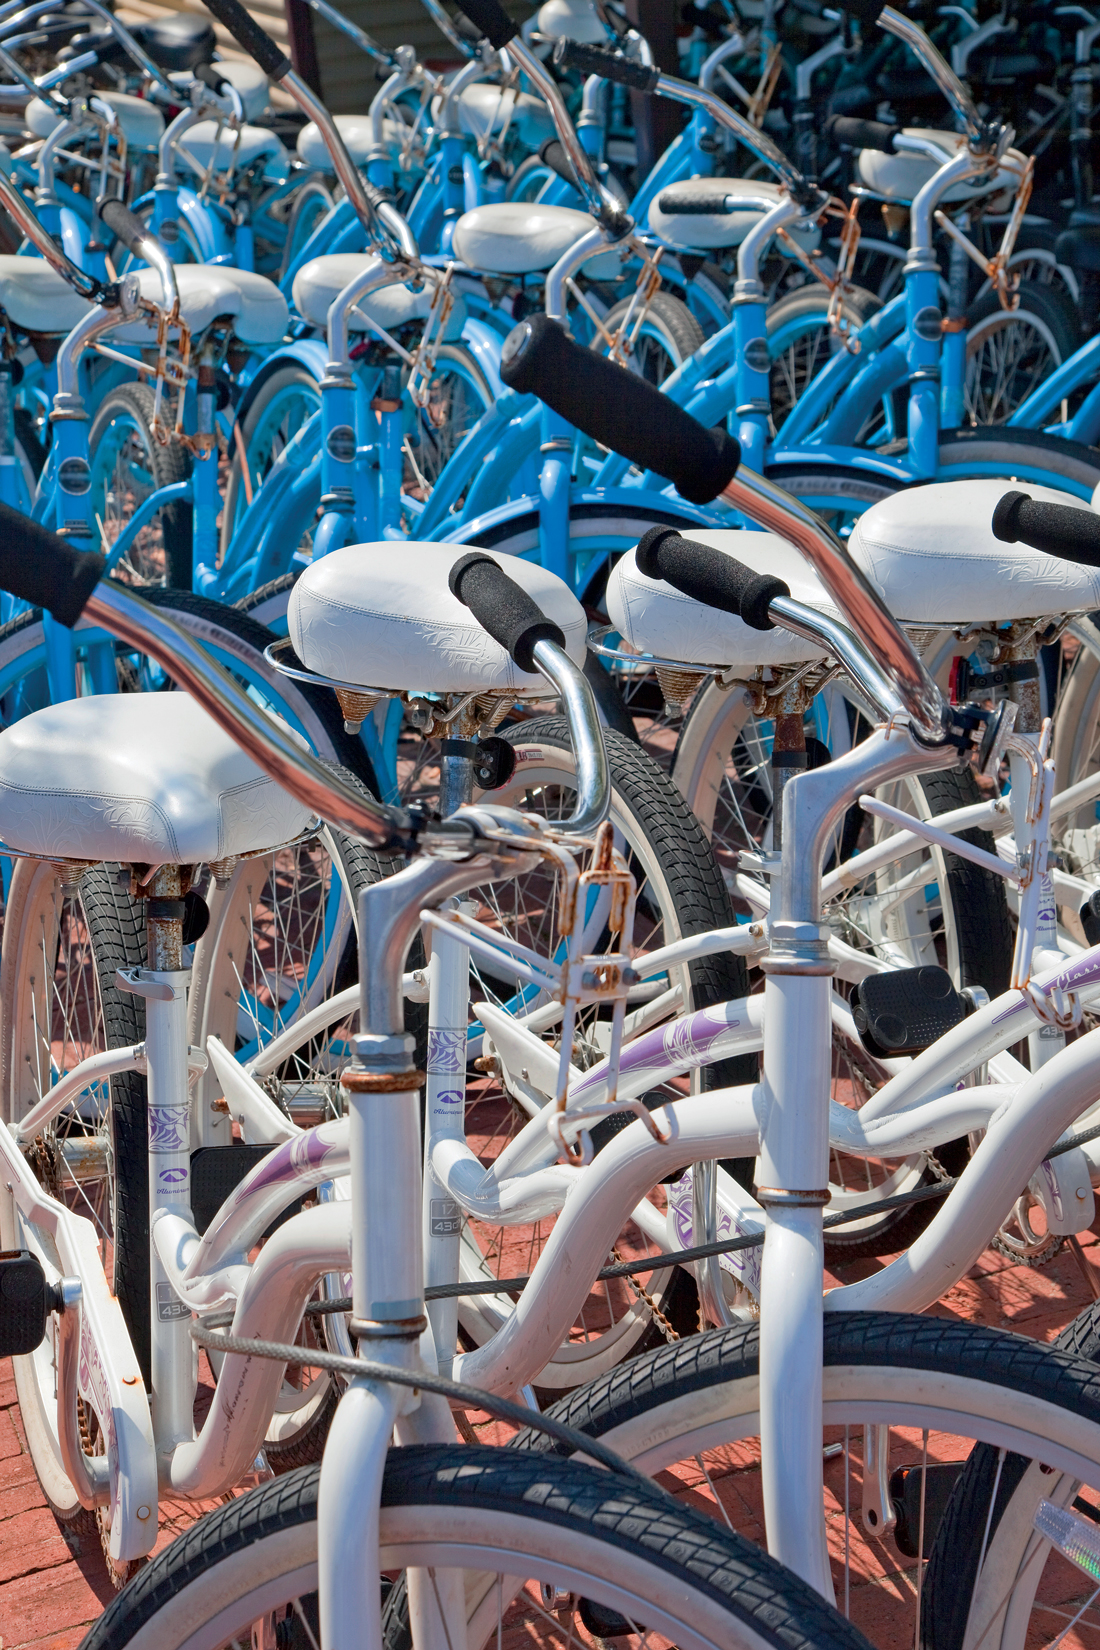 A sea of rental bikes.